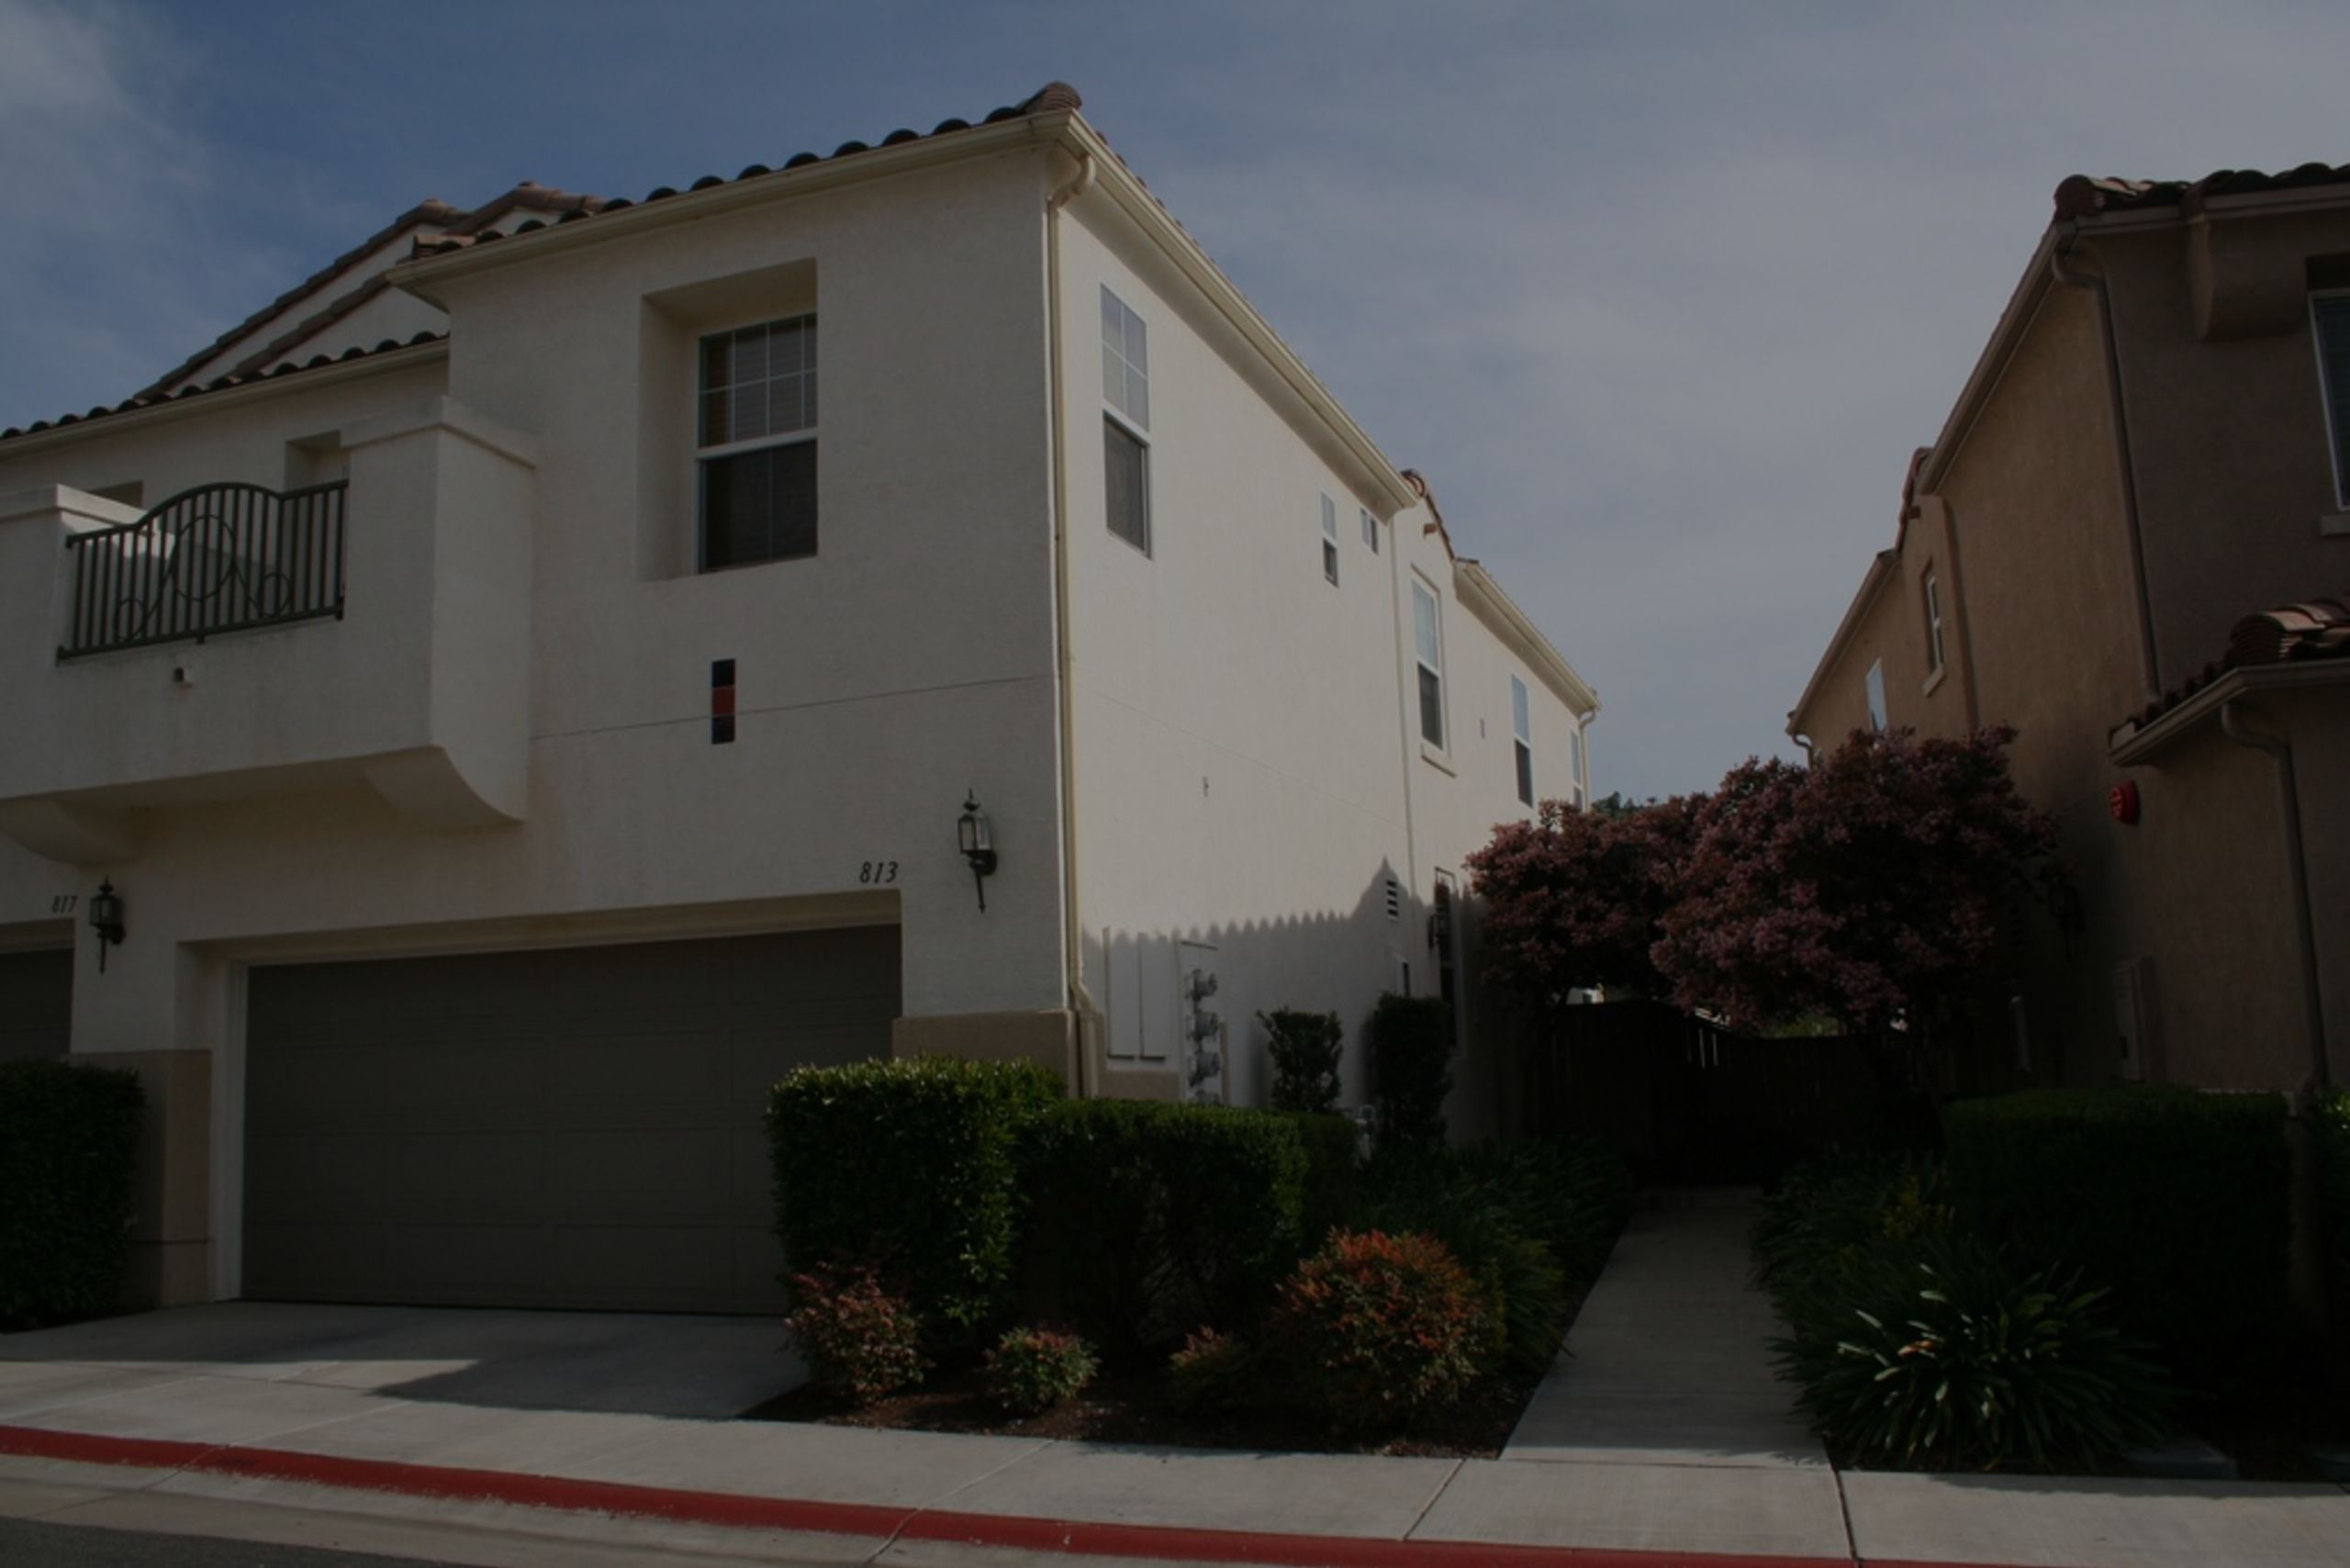 3 bedrooms in San Marcos community of Campana!